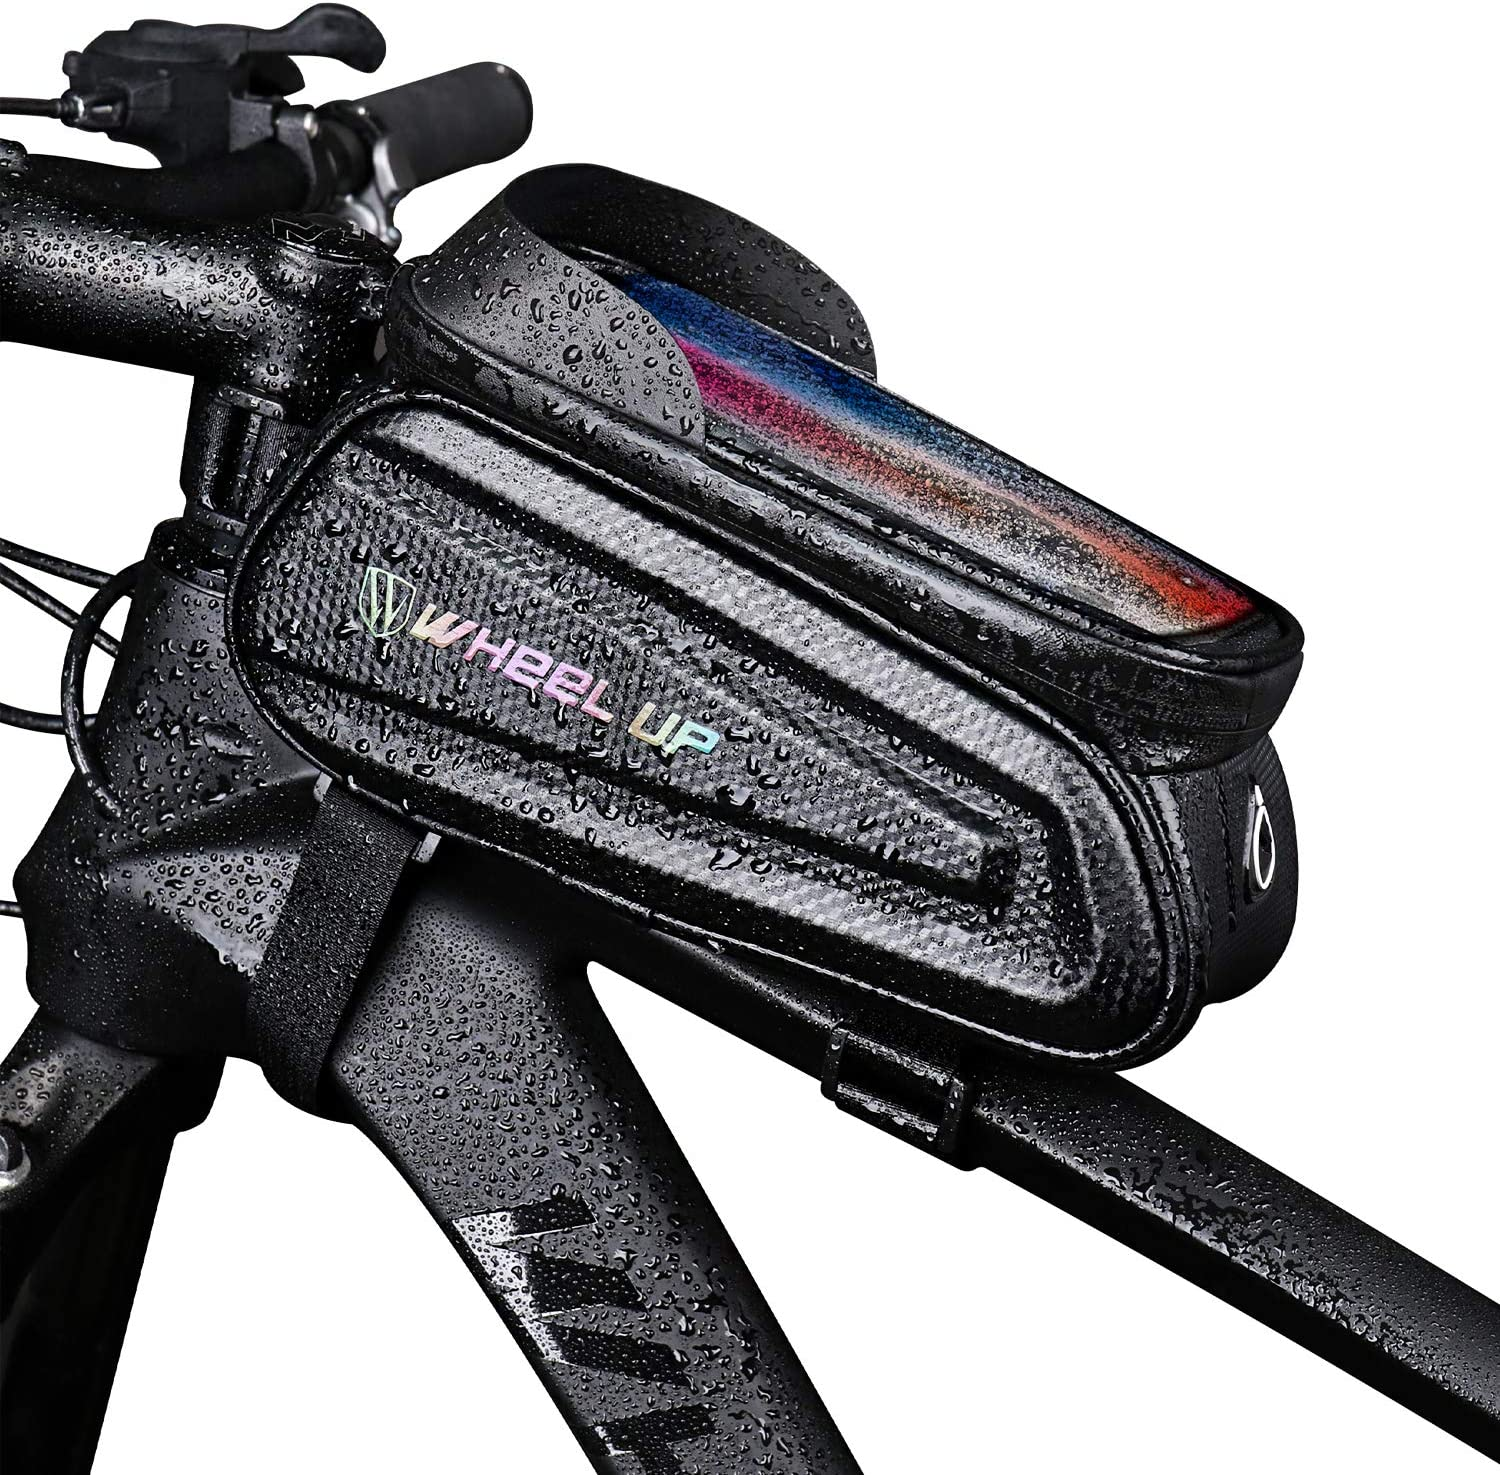 KMM - Bike Bicycle Phone Mount Bags, Waterproof Bike Front Tube Handlebar Storage Bag with Touch Screen Sun Visor Large Capacity Phone Holder Case, Cycling Top Tube Frame Bag for Phone Below 6.5 Inch : Sports & Outdoors